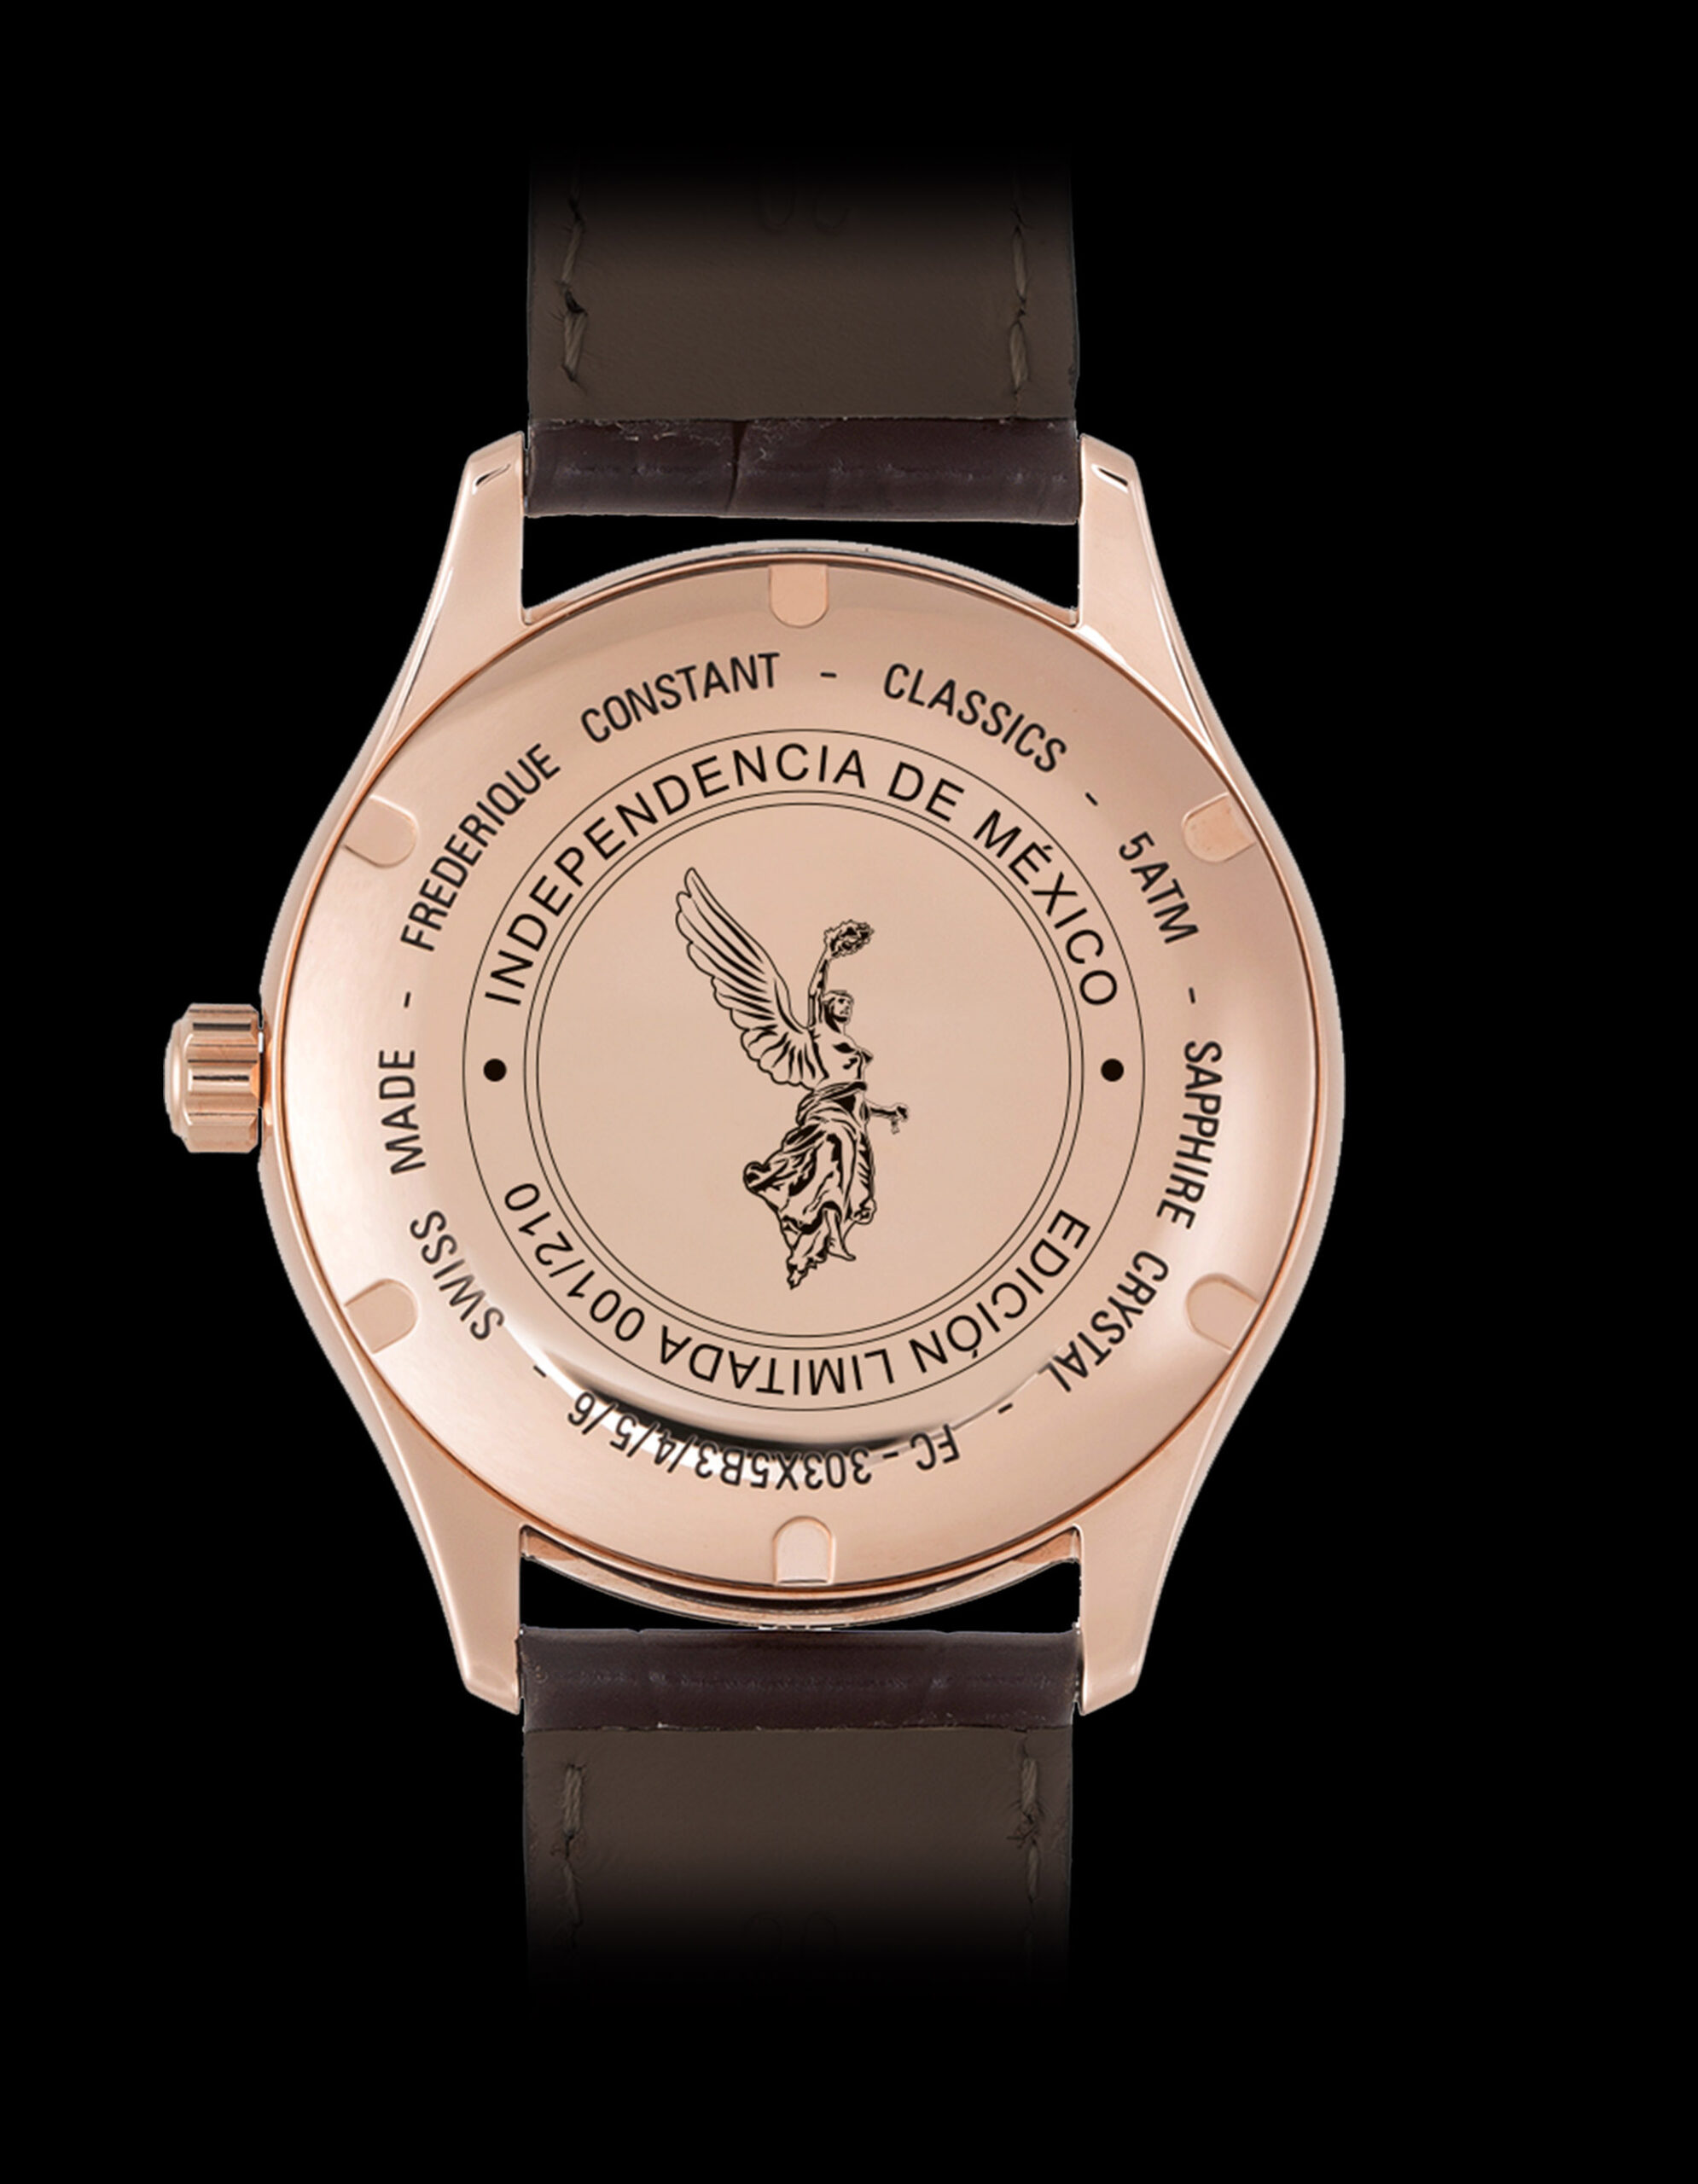 Frederique Constant Limited Edition Angel Independencia-2020-fondo